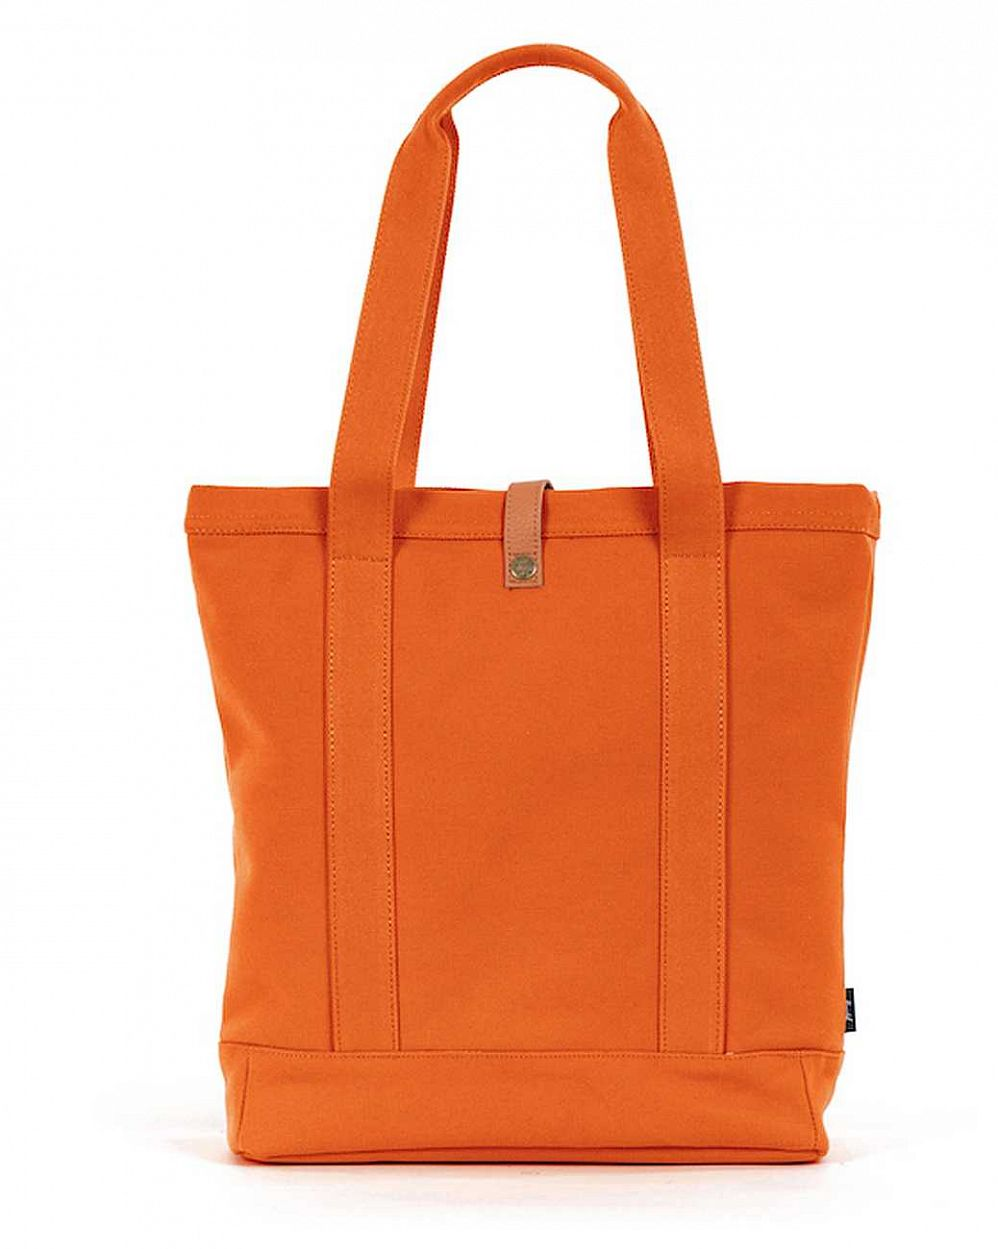 Сумка Herschel Market Canvas Burnt Orange отзывы